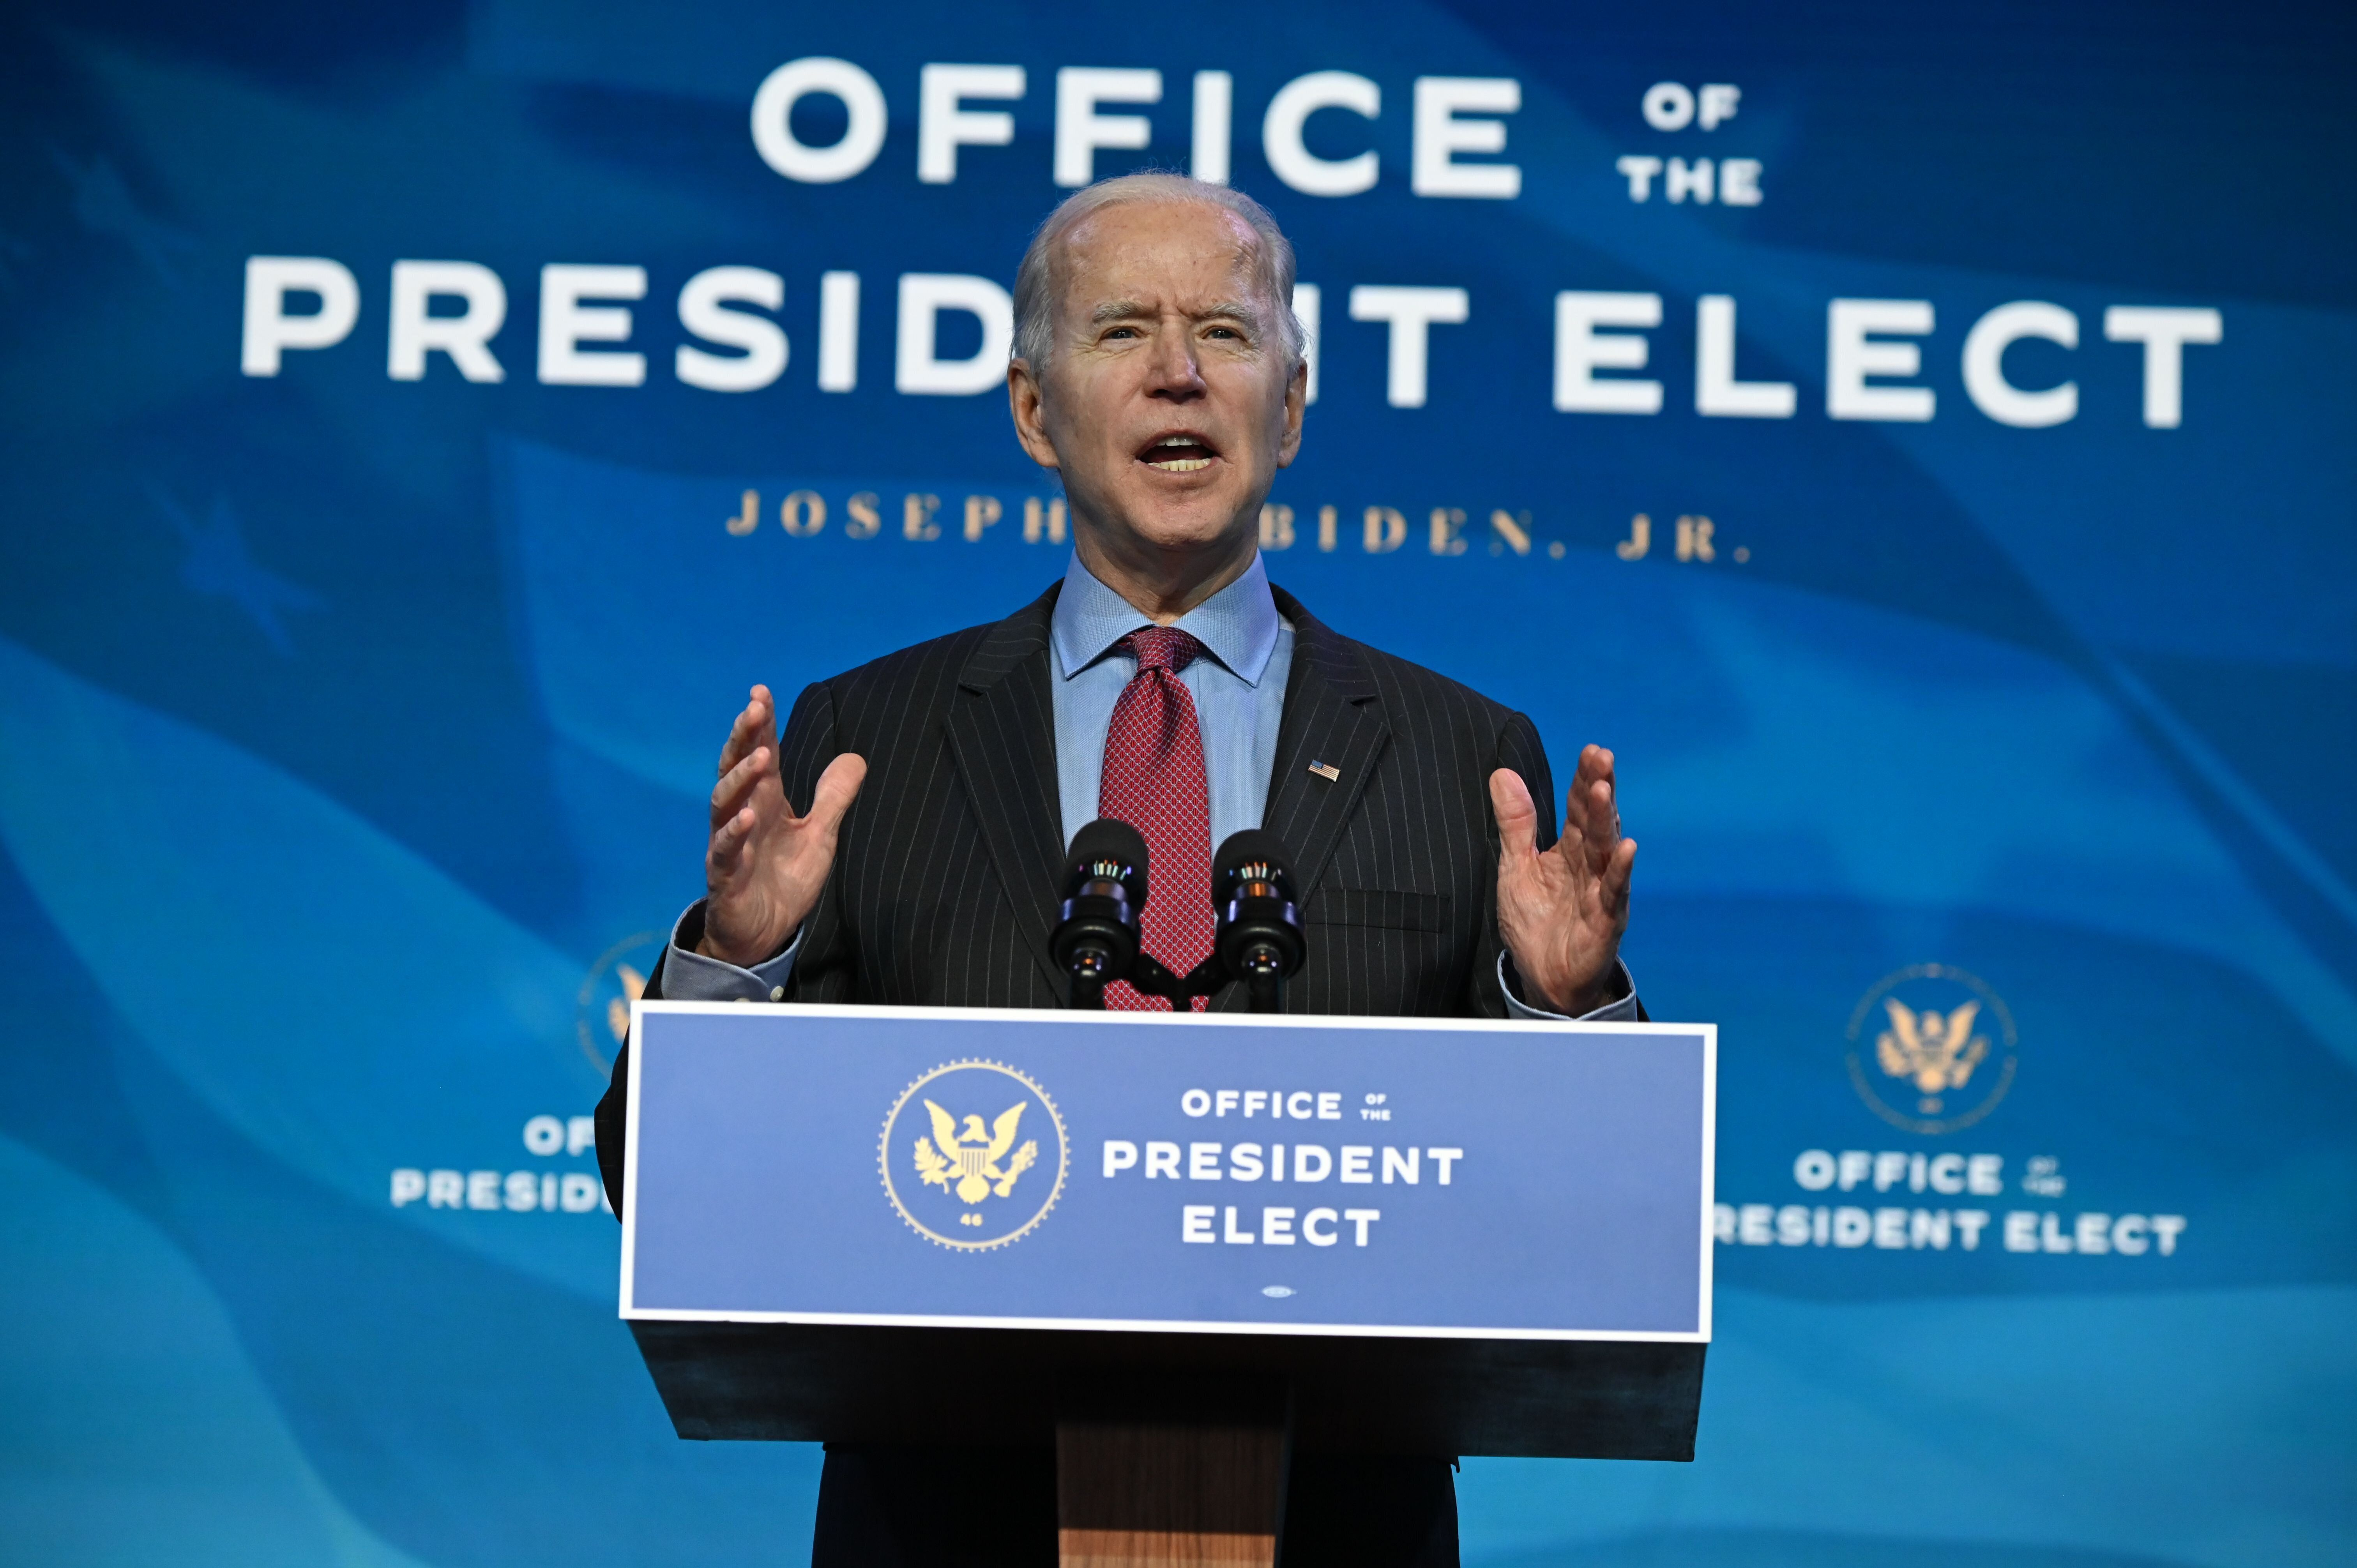 US President-elect Joe Biden speaks at The Queen theater in Wilmington, Delaware on January 8, 2021, to announce key nominees